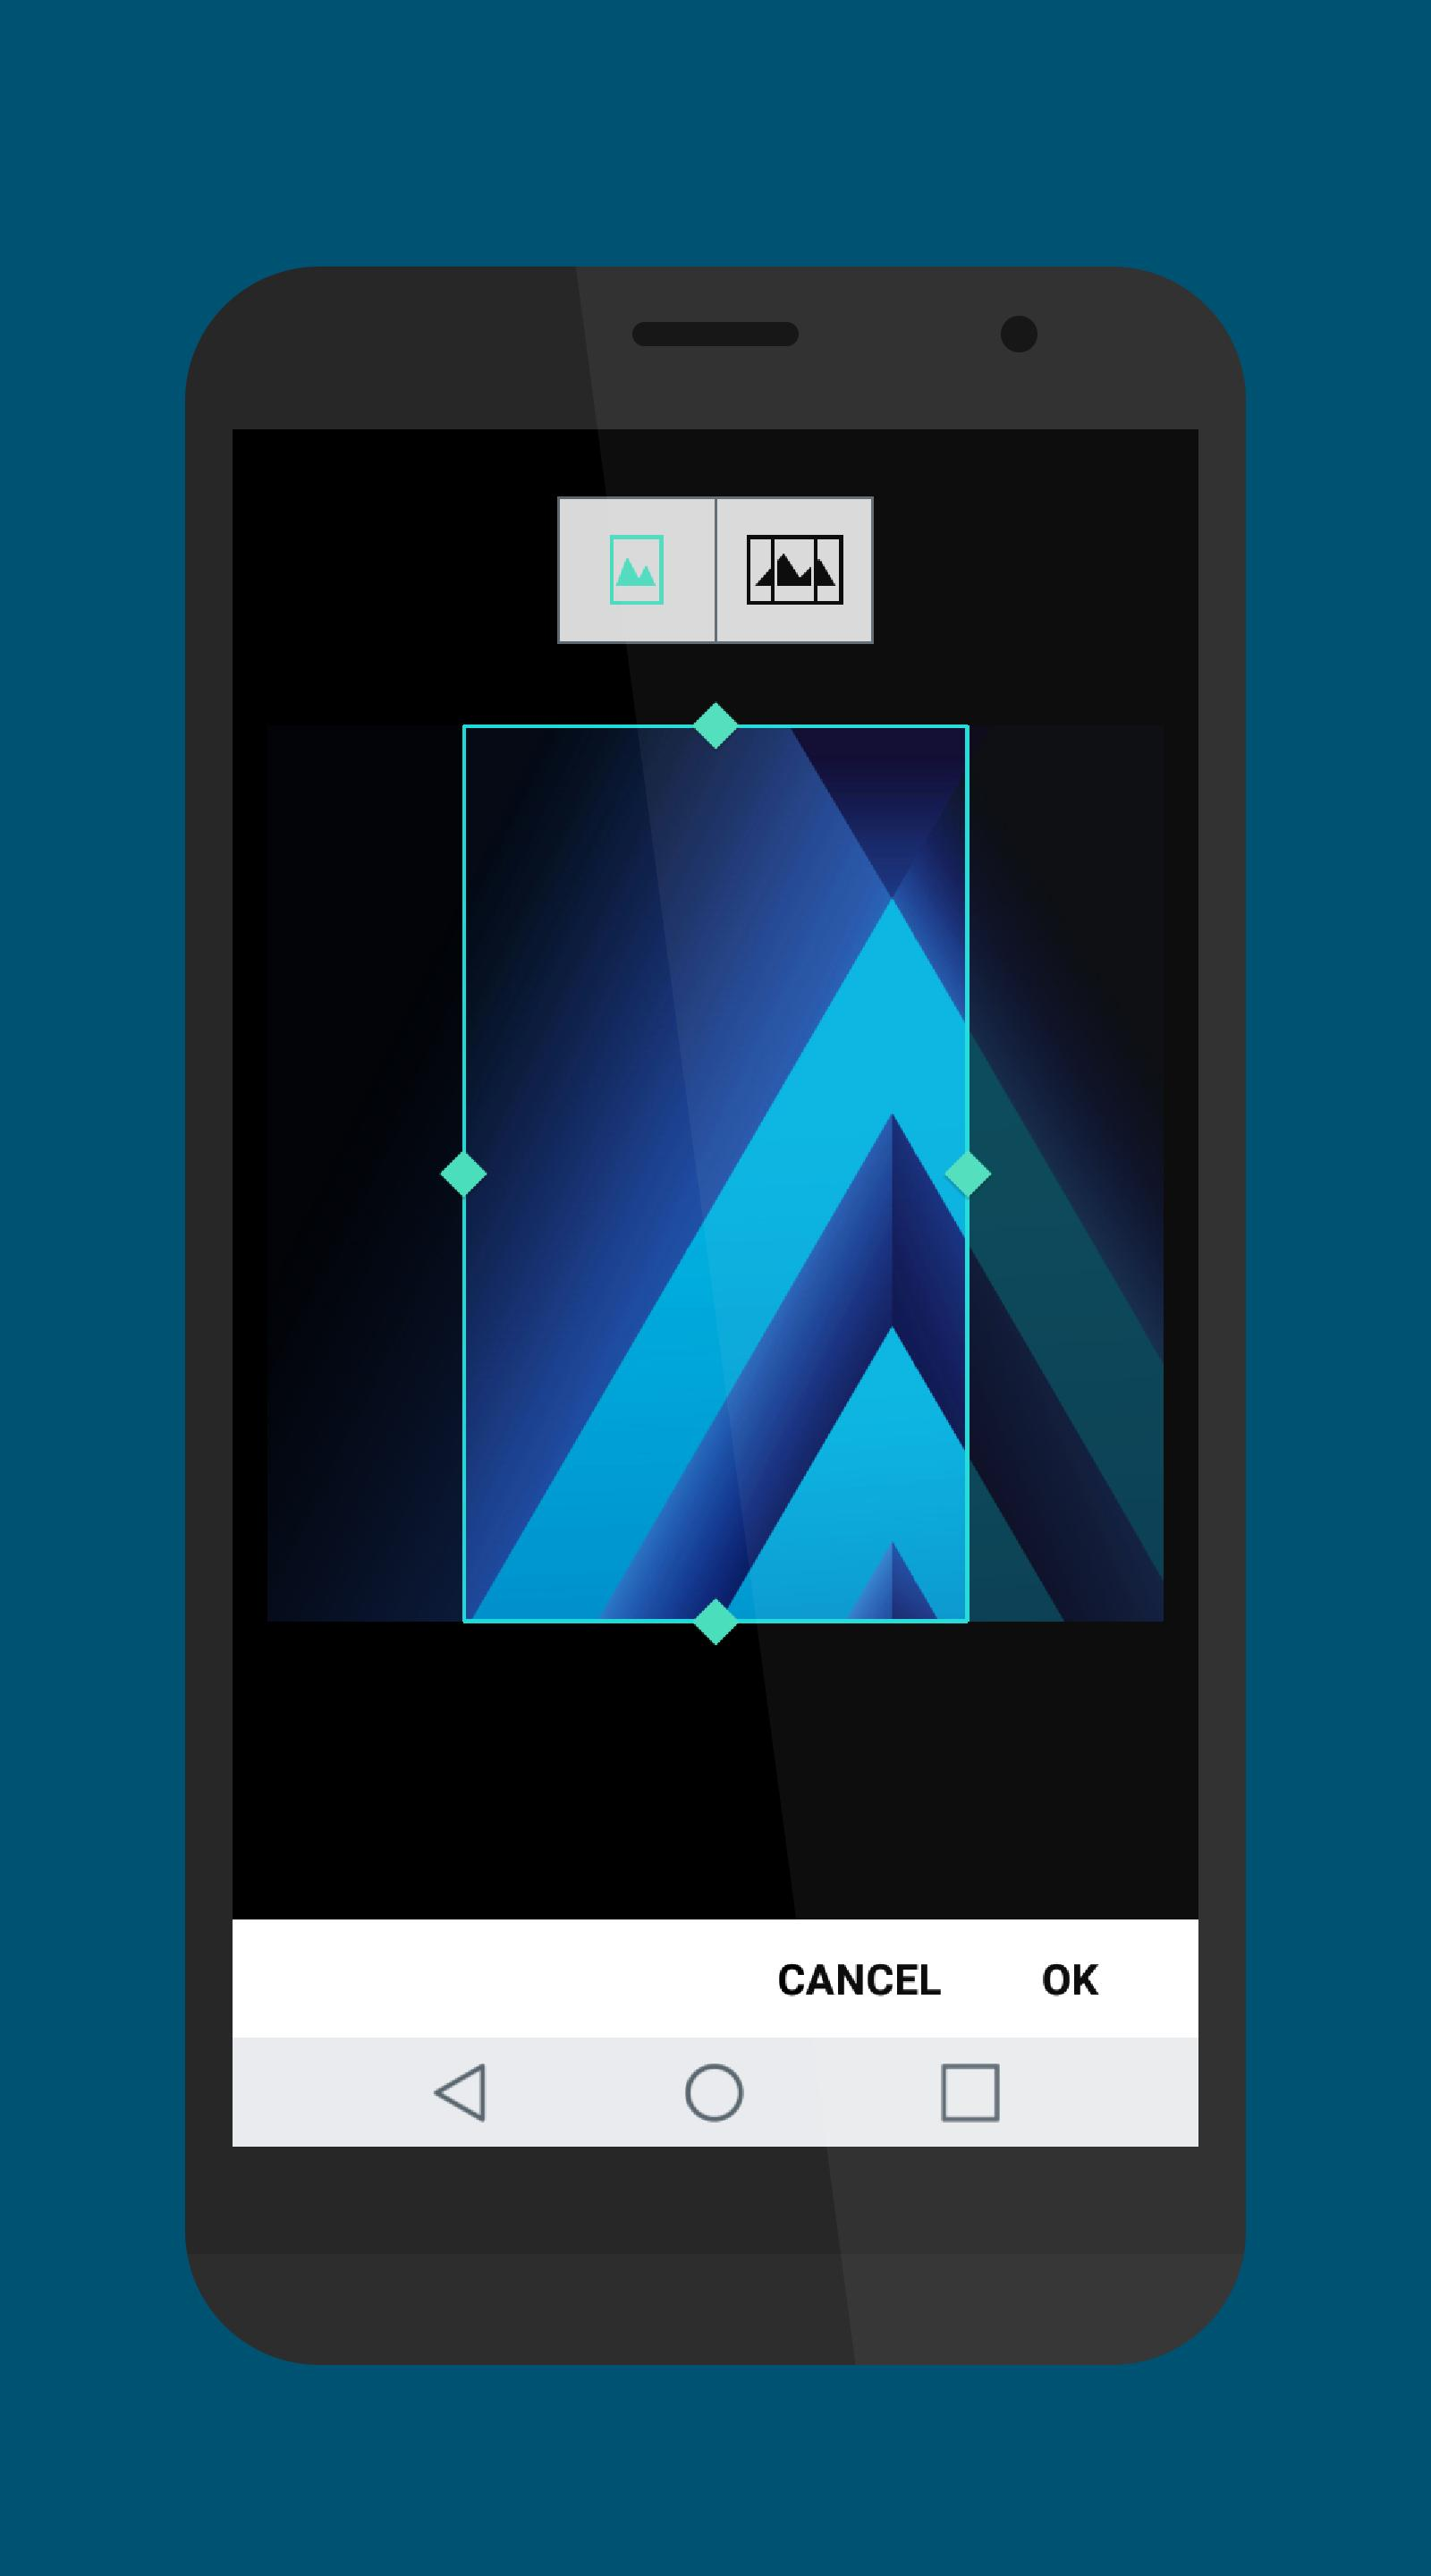 Wallpapers Galaxy A7 2017 For Android Apk Download